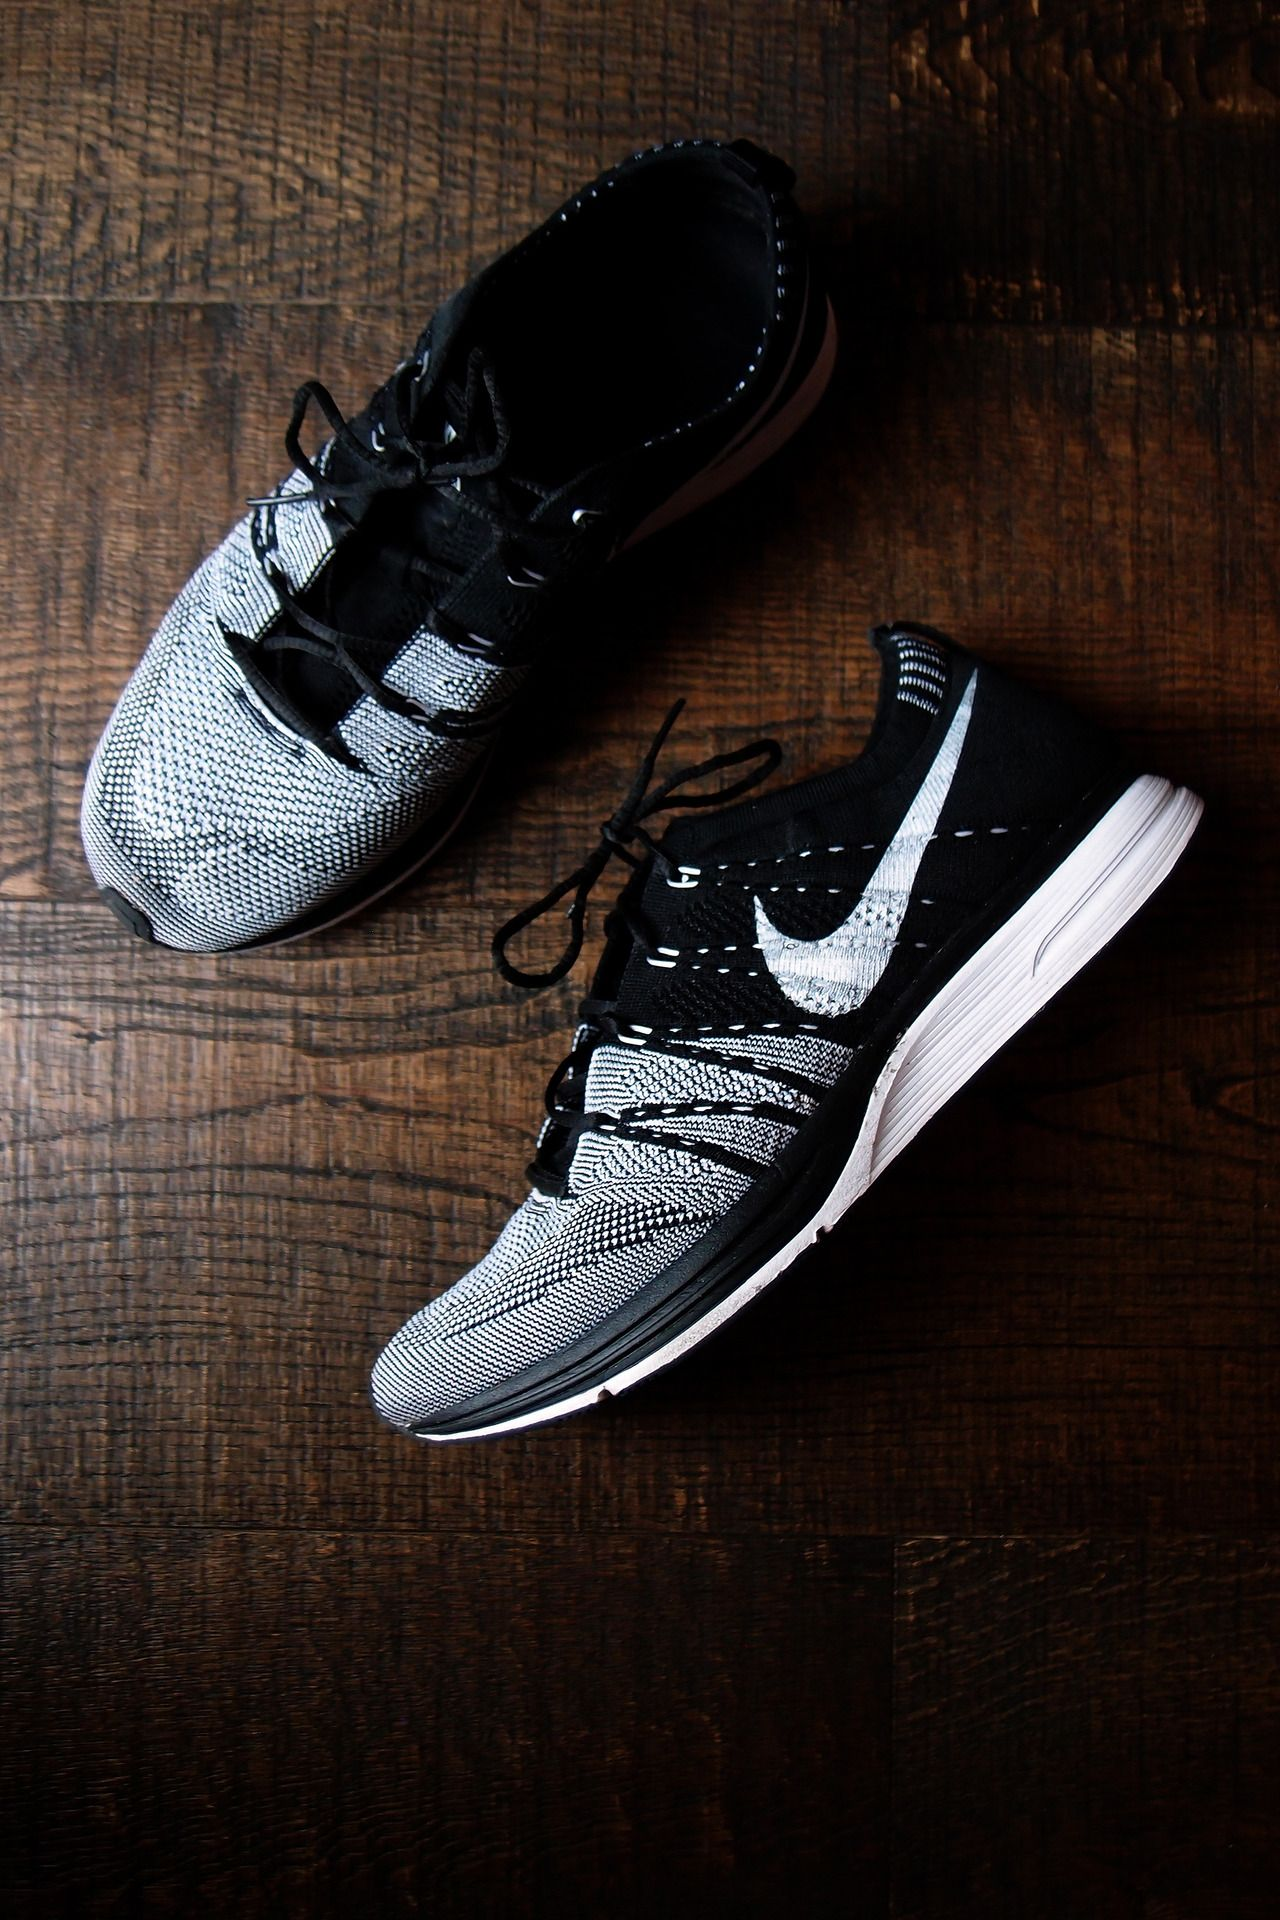 best loved 4eeac 4dc69 just for dad  fathersdaygifts Chaussures De Course, Chaussures Nike, Chaussures  Homme, Vetement